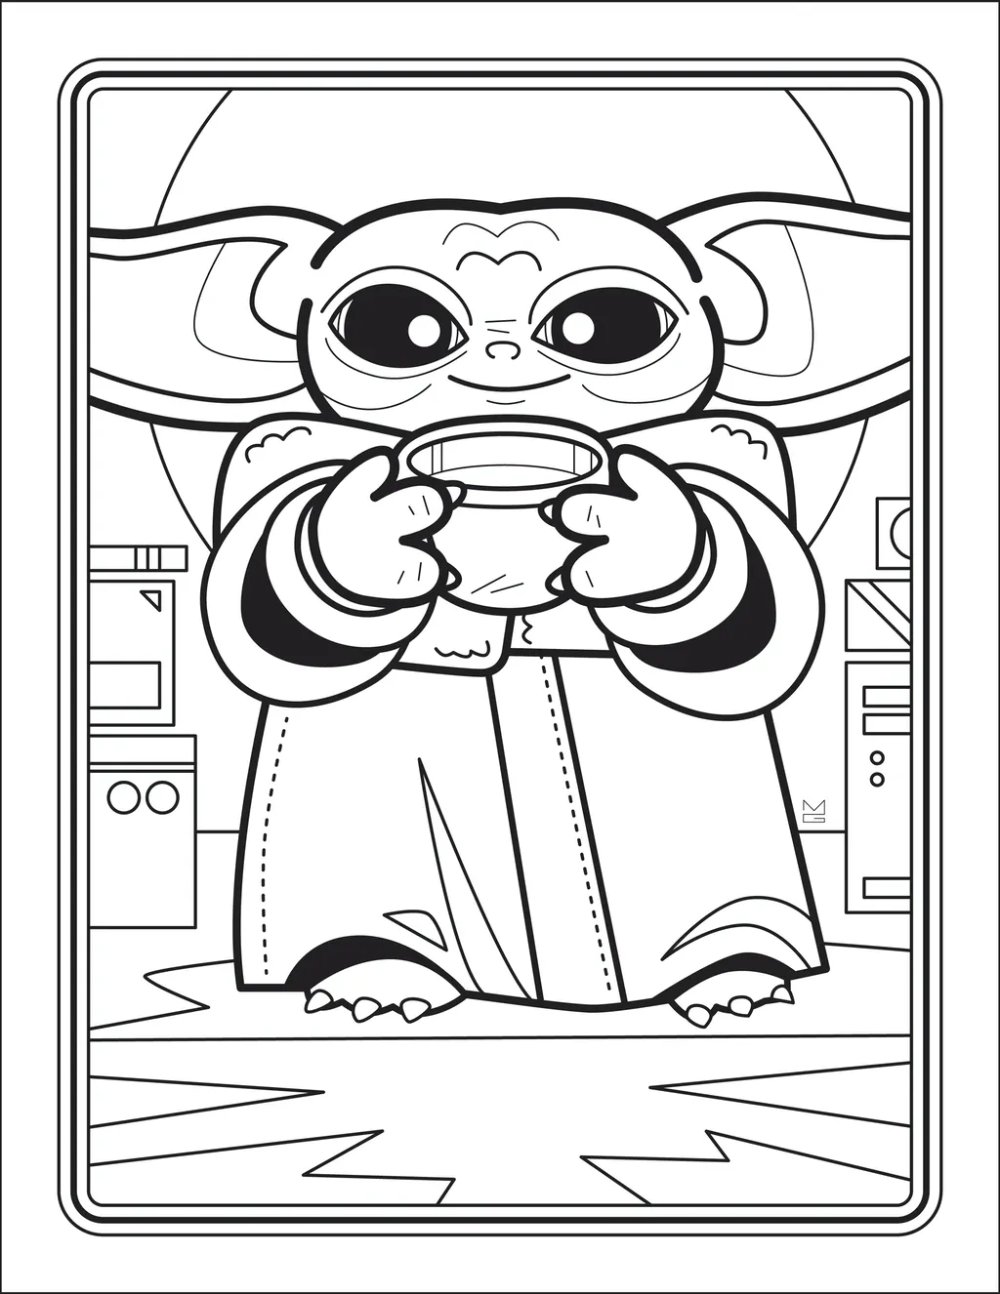 Free Coloring Pages For Kids Or Adults Who Still Have Fun Free Coloring Pages Free Coloring Sheets Coloring Books